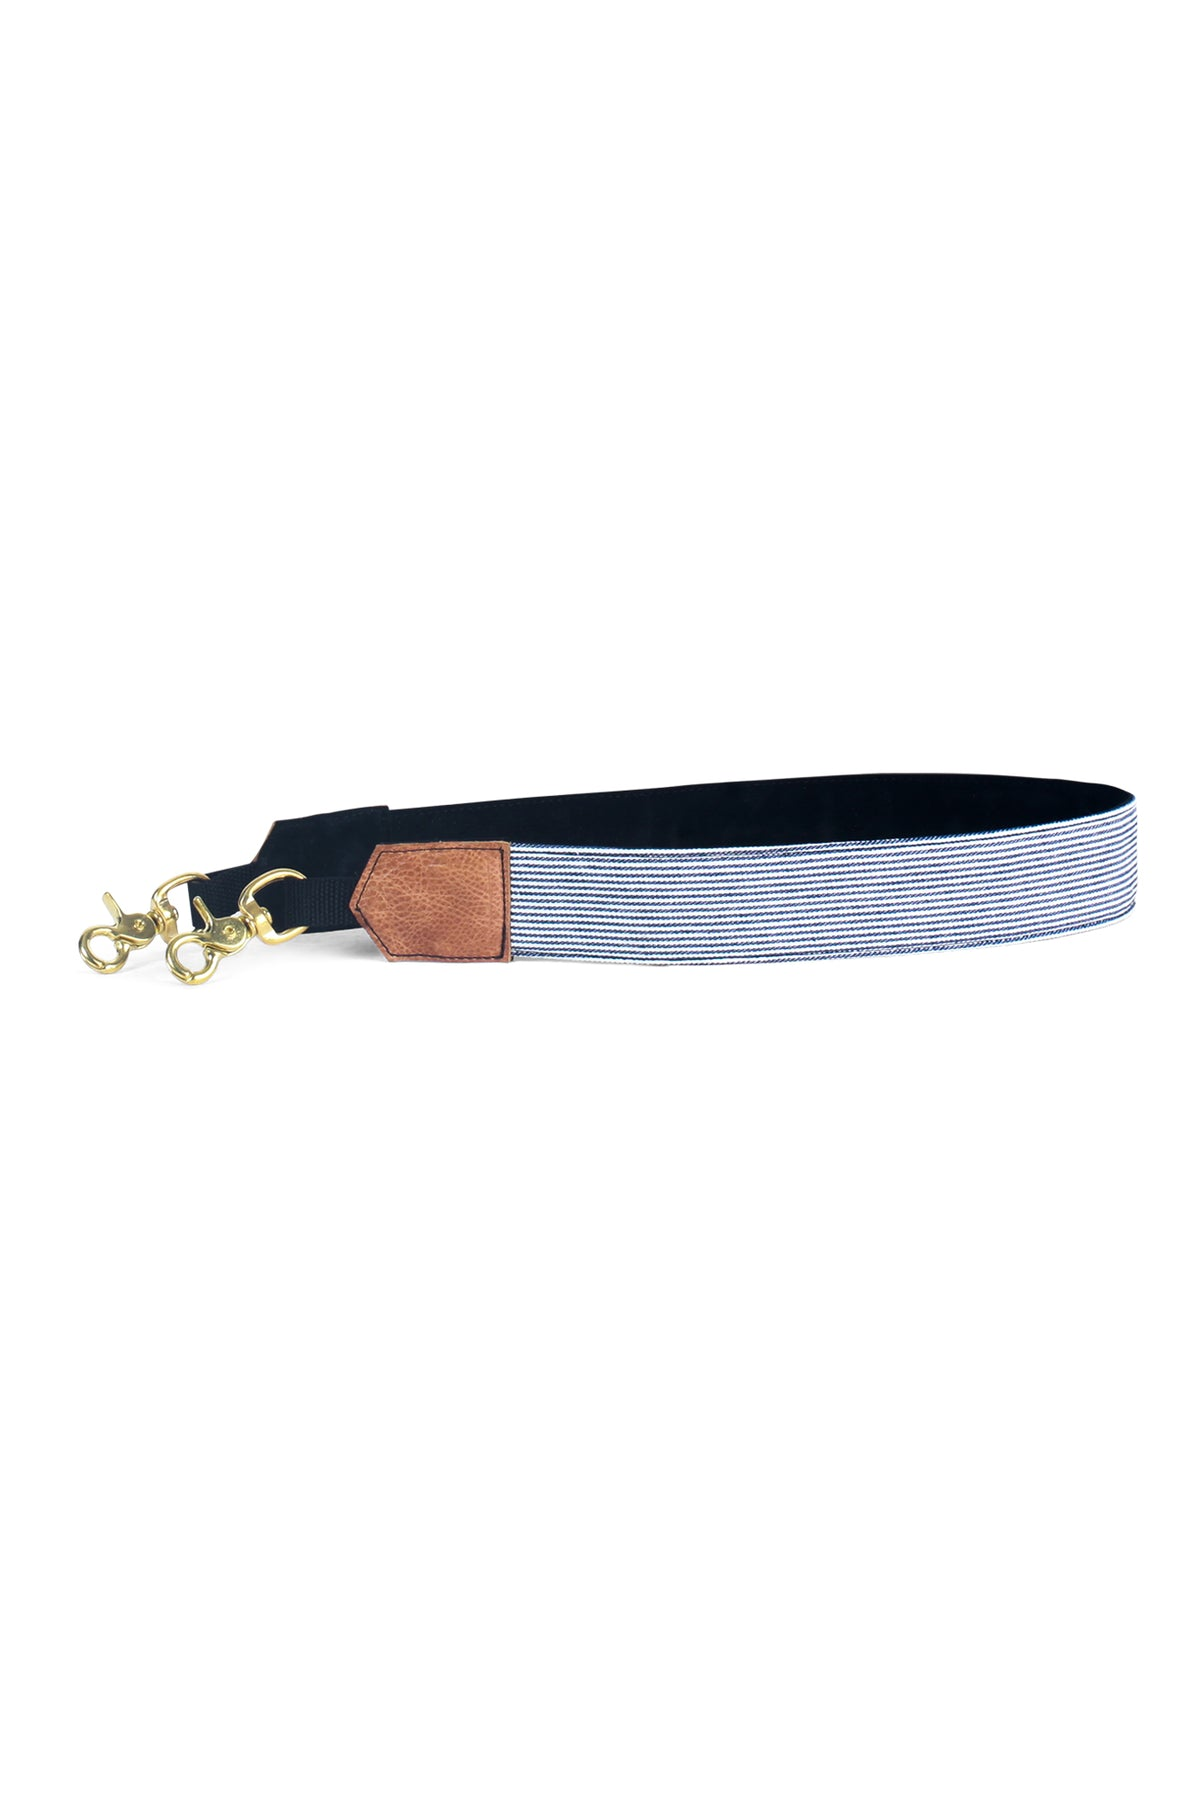 The Rais Case Strap - Stace - image 1